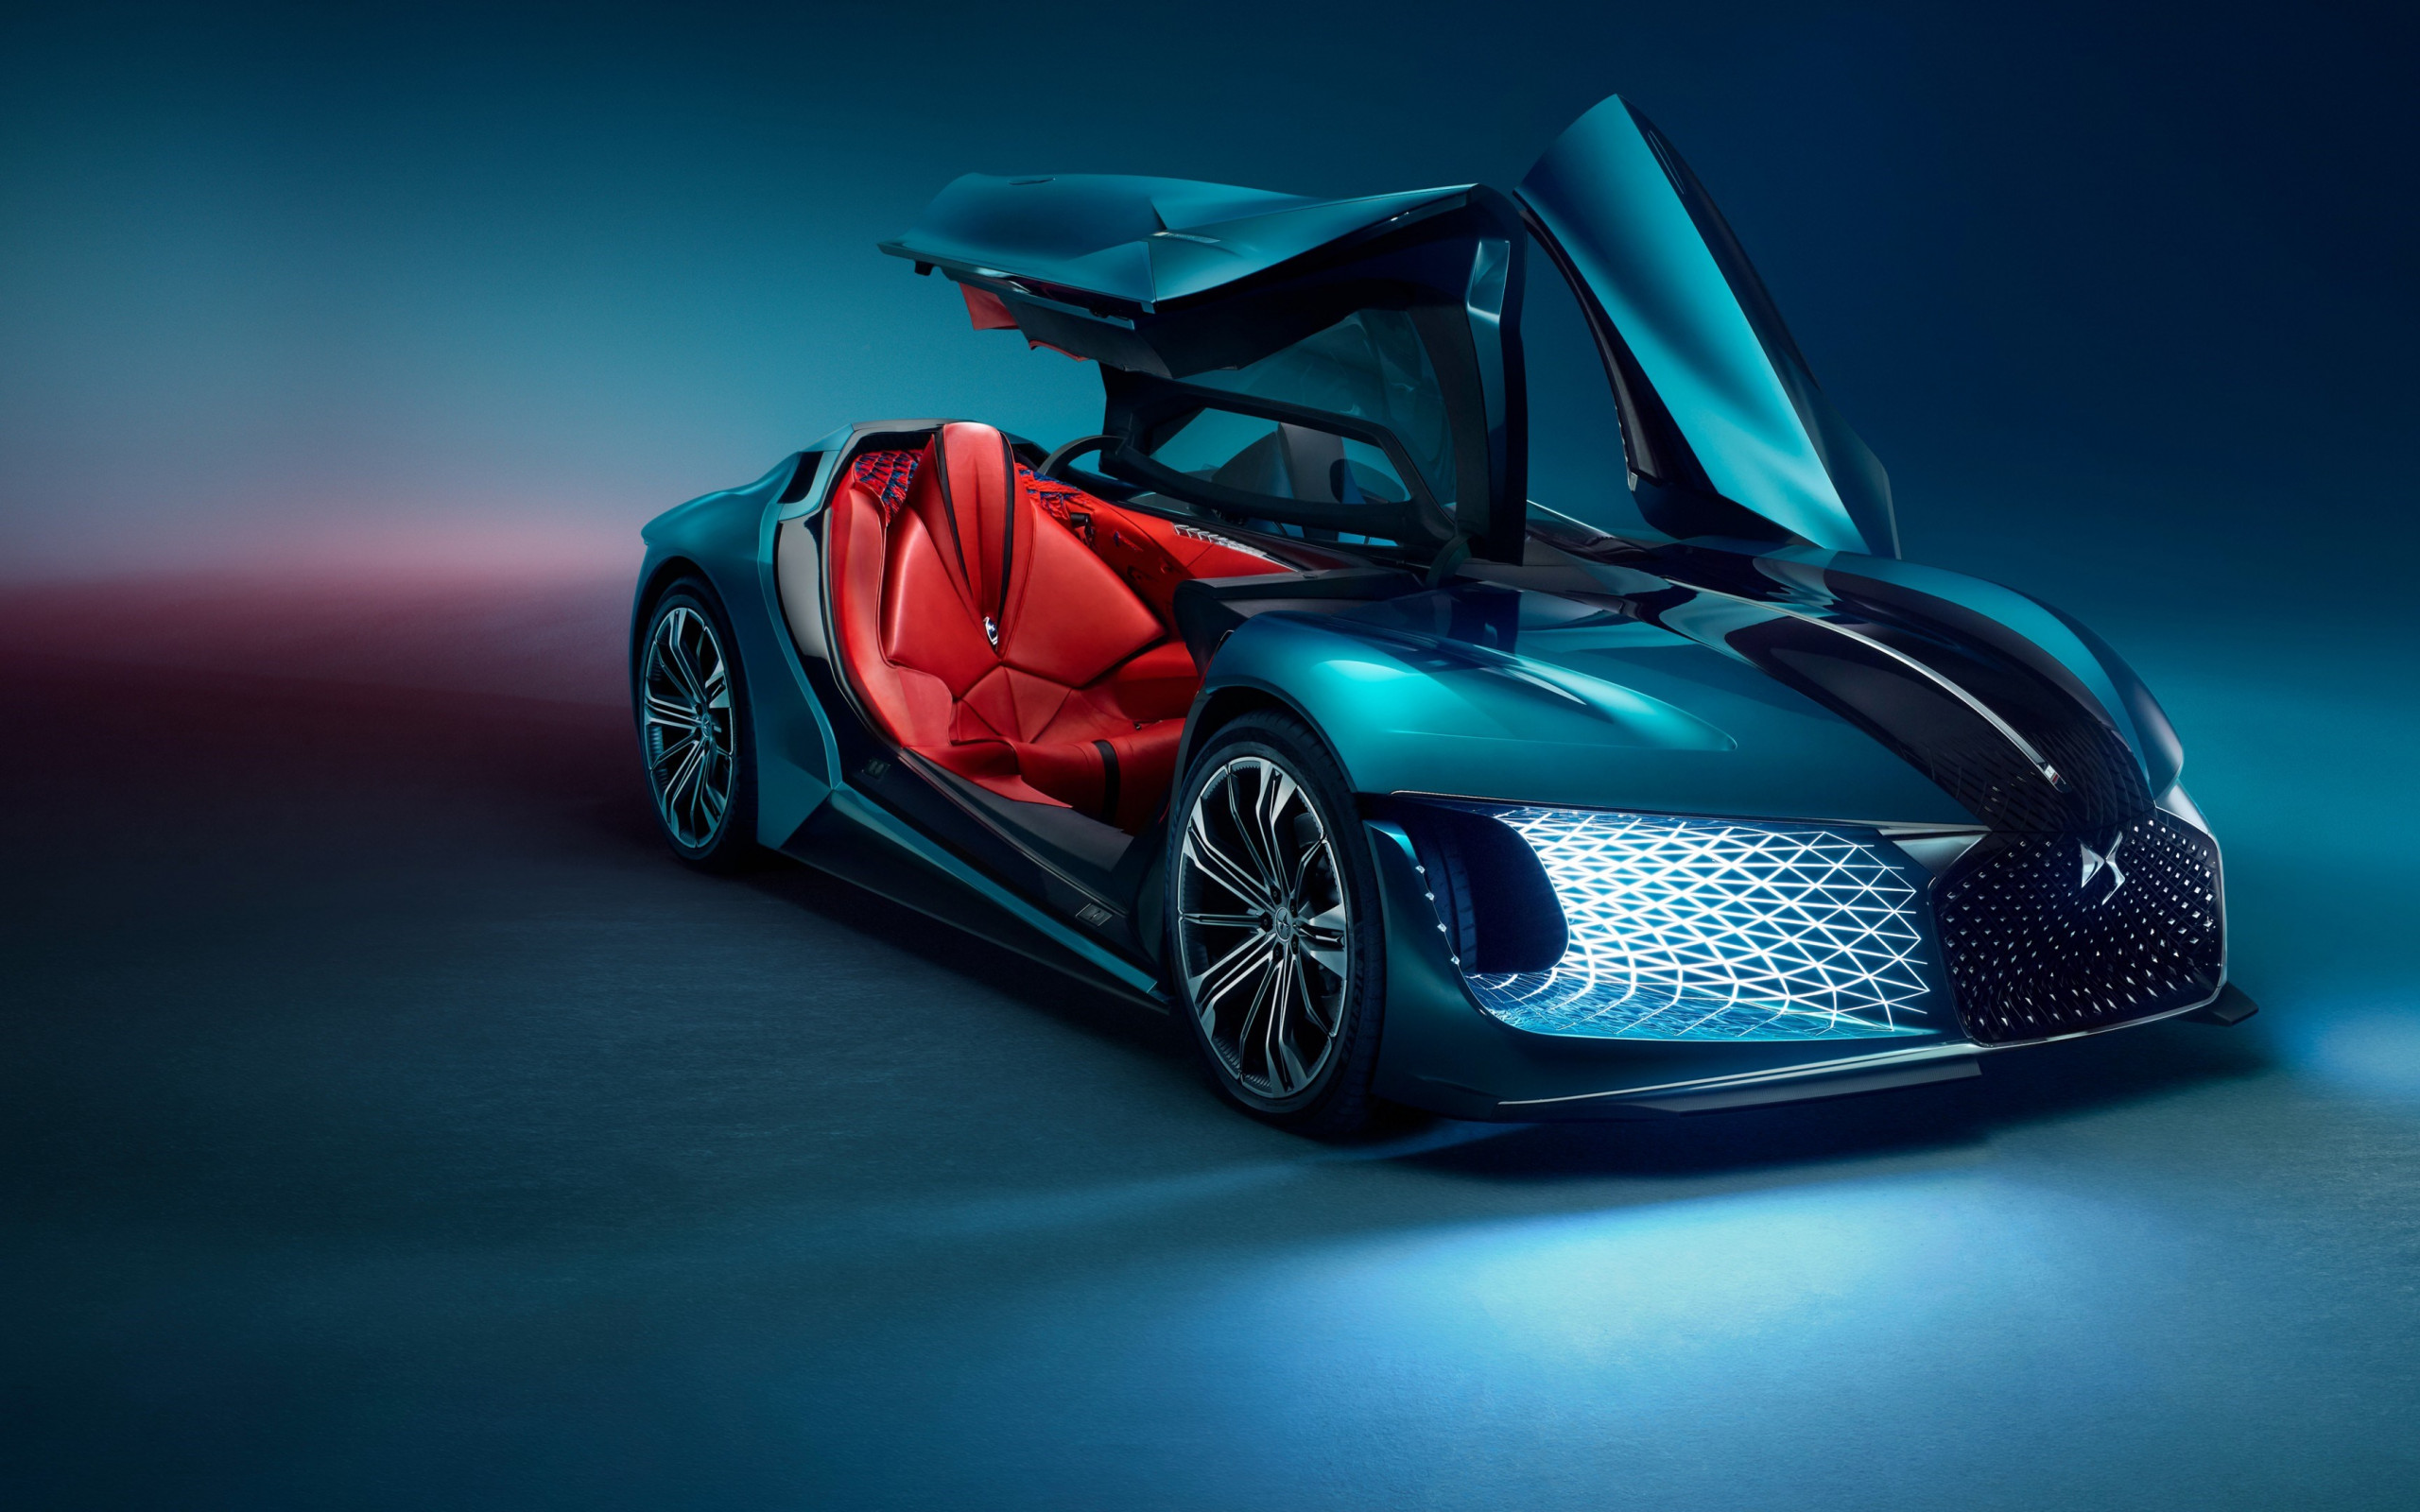 DS X E Tense concept wallpaper 2560x1600